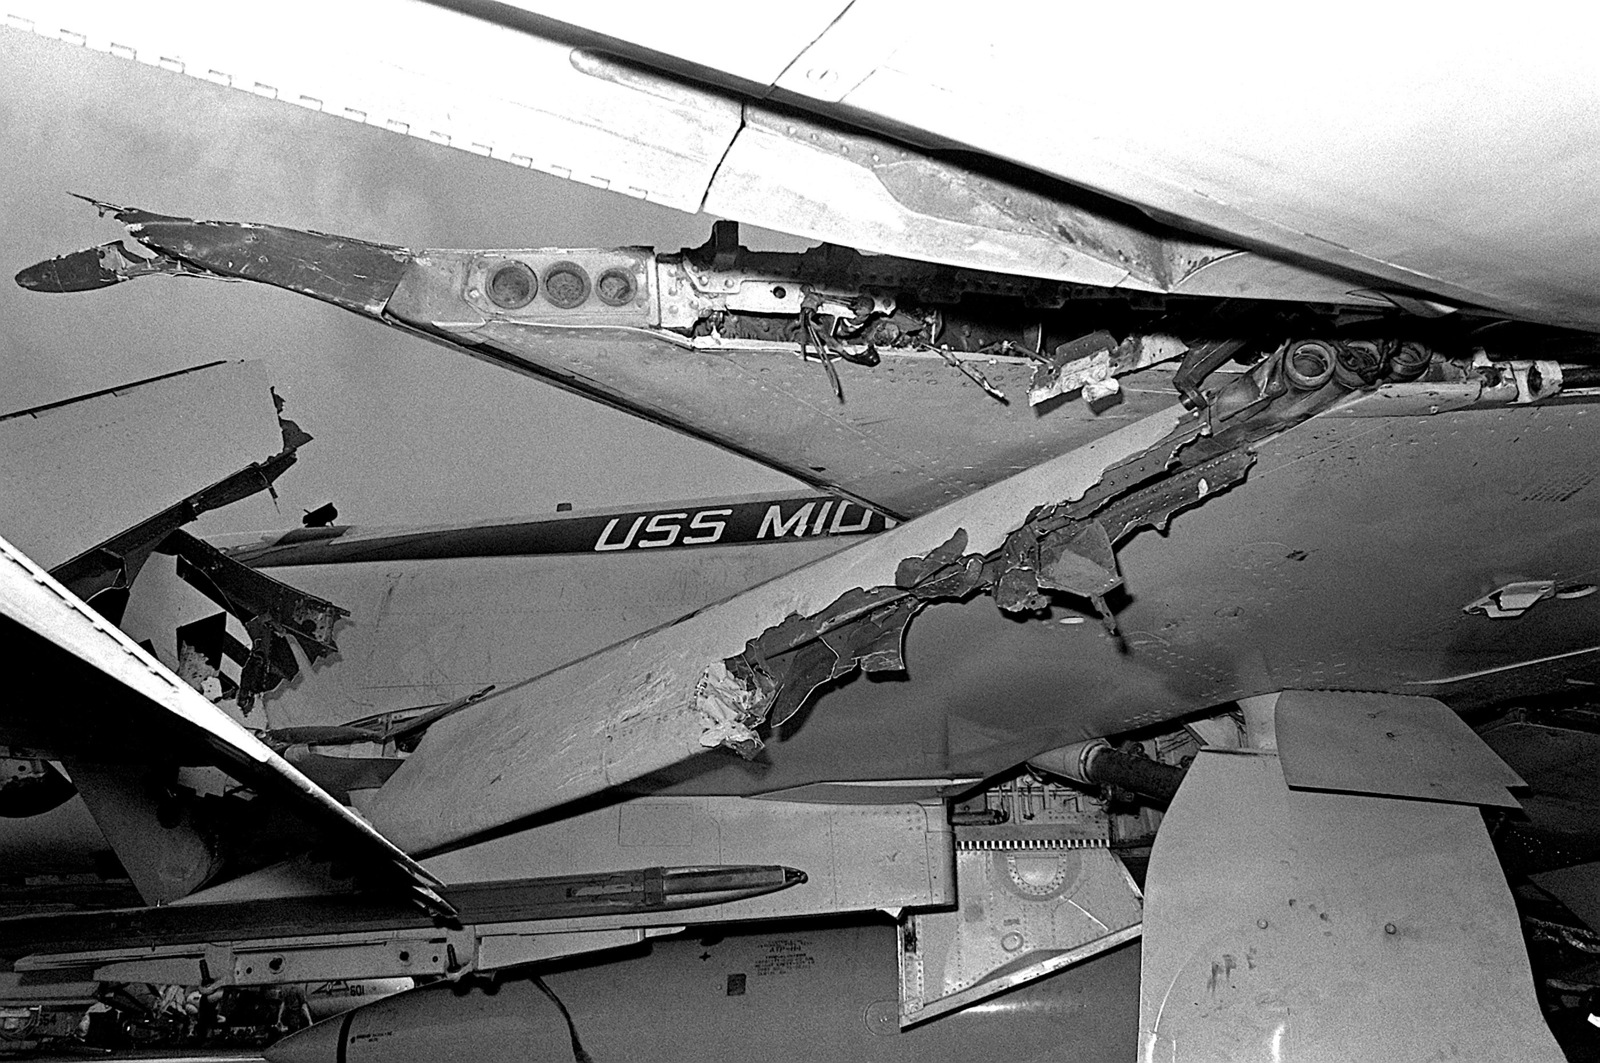 A view of damage caused to an F-4 Phantom II aircraft that was parked on the port side flight deck of the aircraft carrier USS MIDWAY (CV-41) when it collided with the Panamanian freighter CACTUS